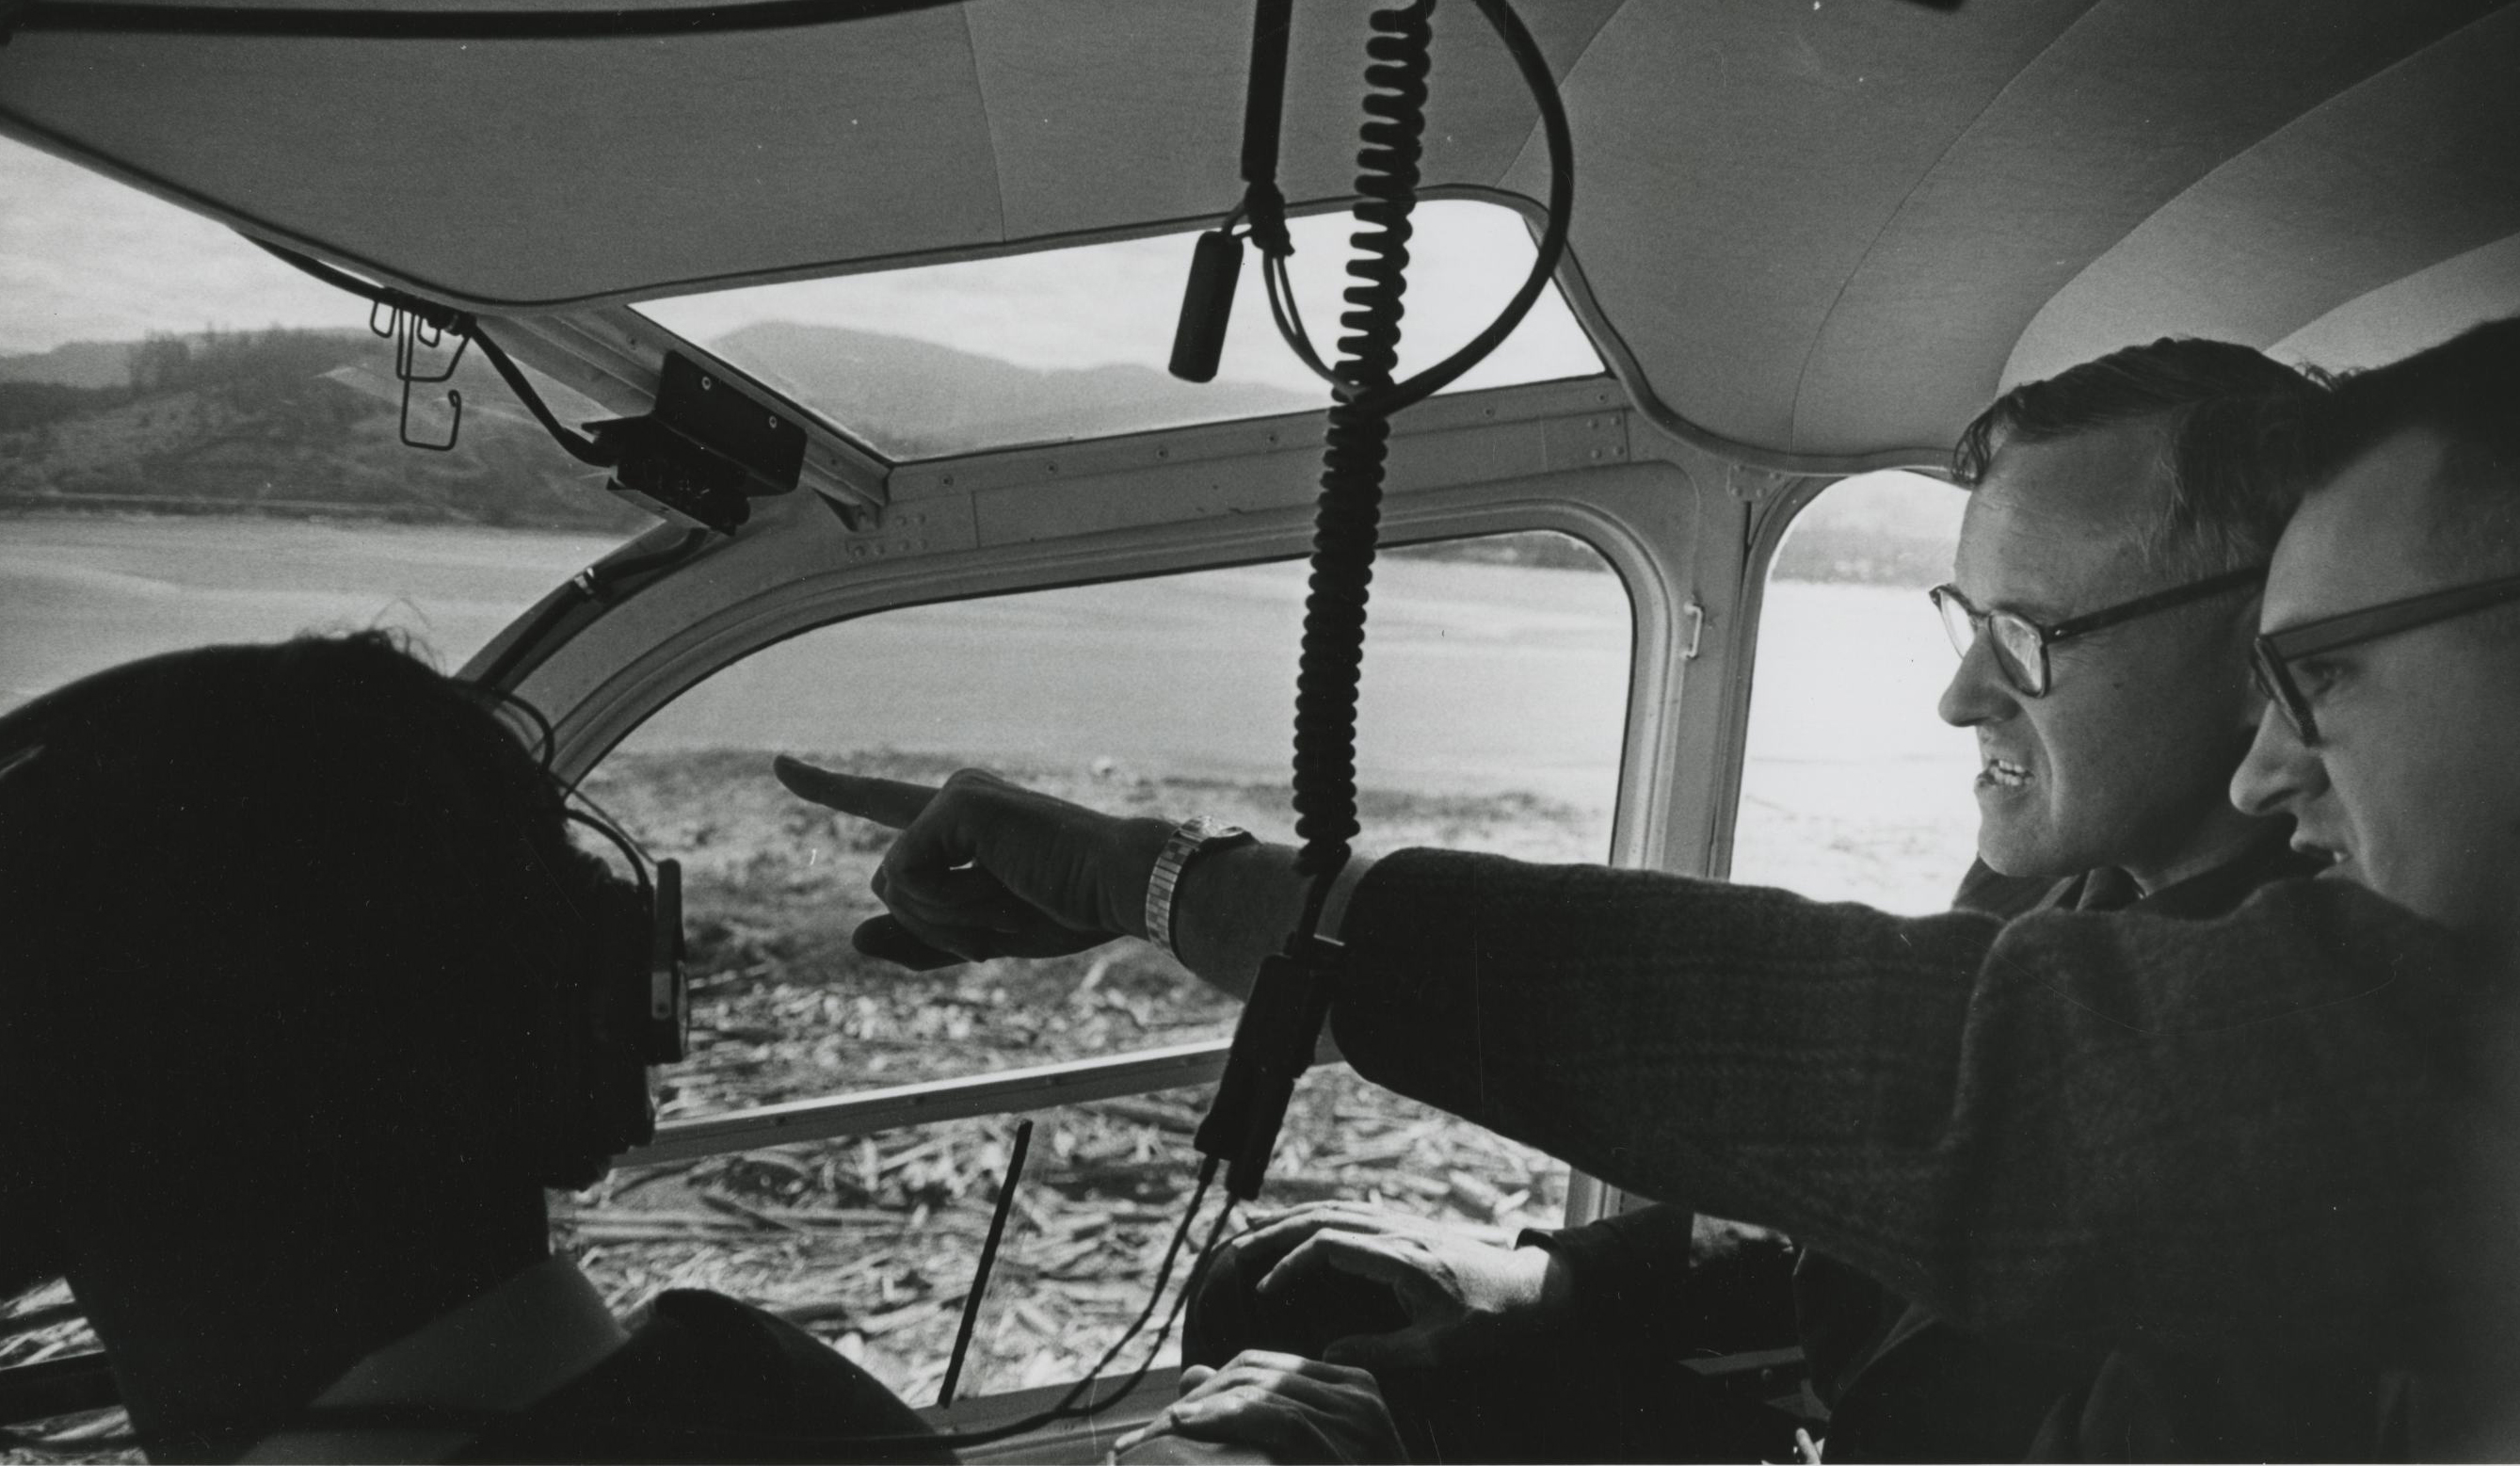 McCall in a helicopter flying over Oregon beaches, 1967